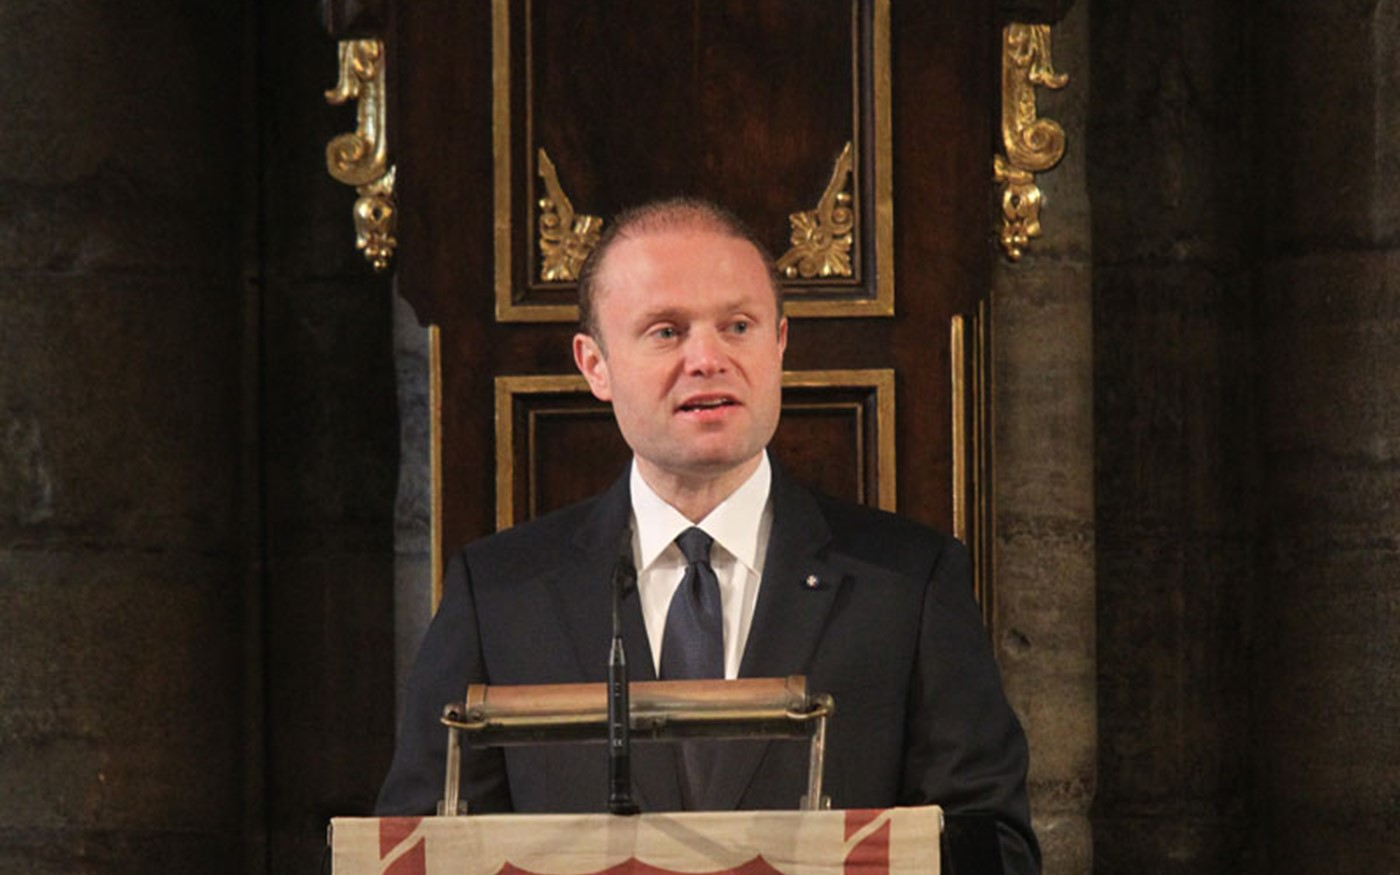 The Prime Minister of Malta and Commonwealth-in-Office, Dr Joseph Muscat KUOM, reads a reflection